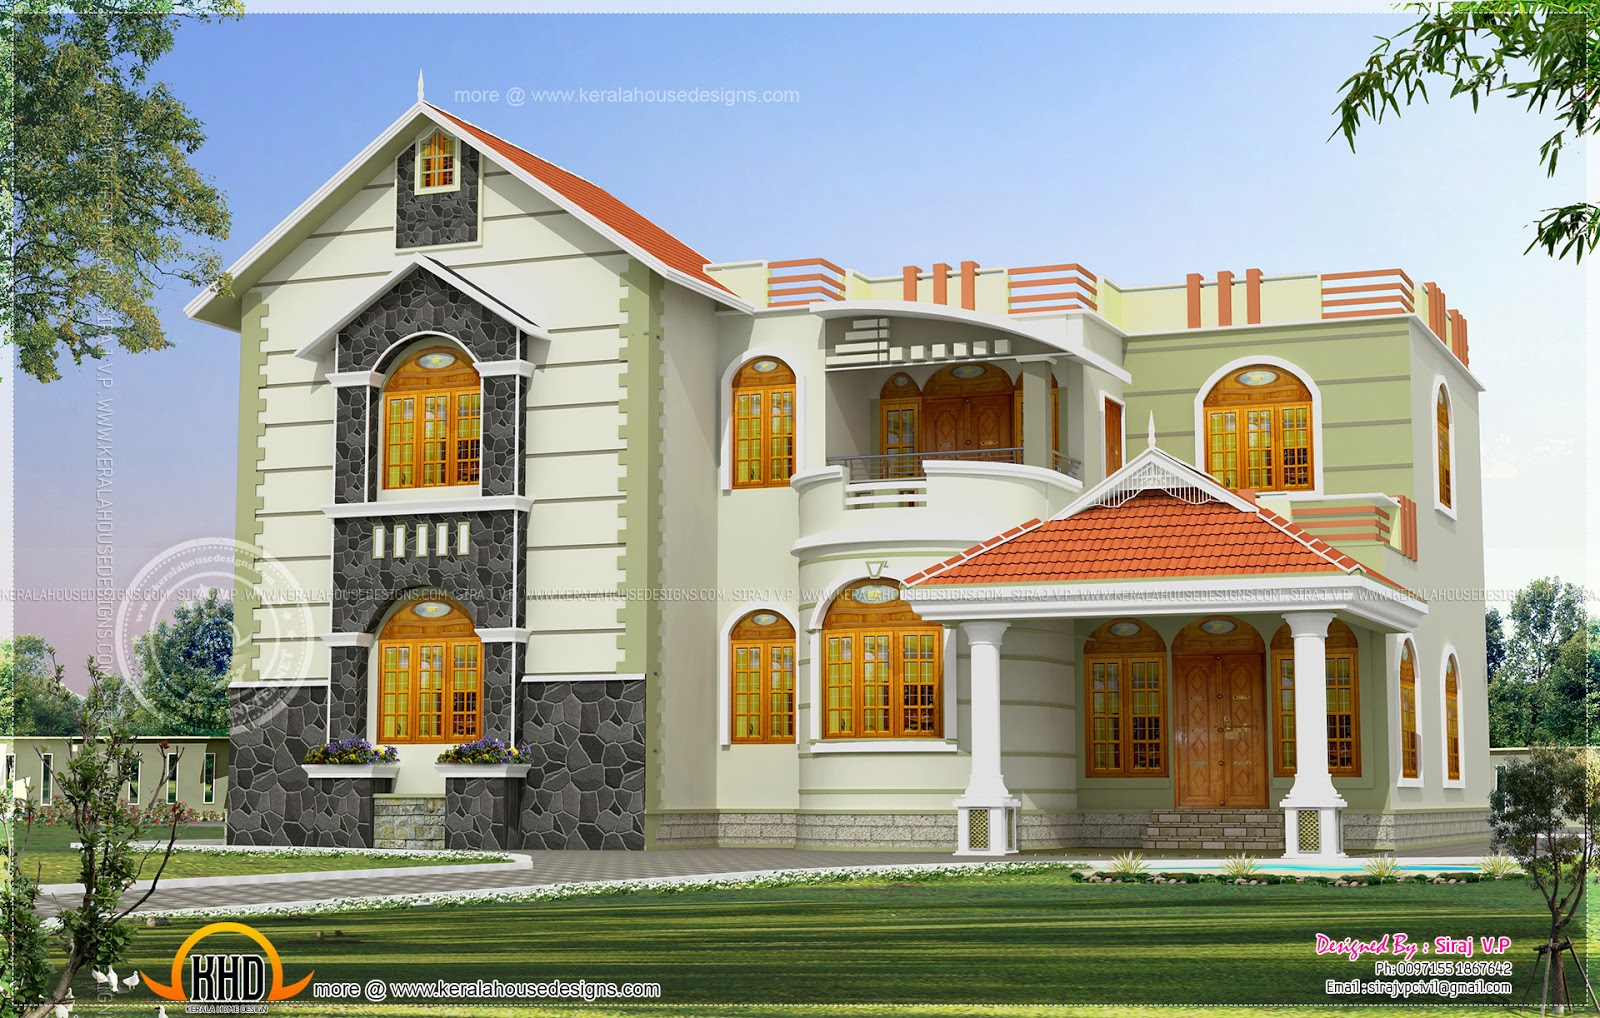 One house exterior design in two color combinations for House outside color design